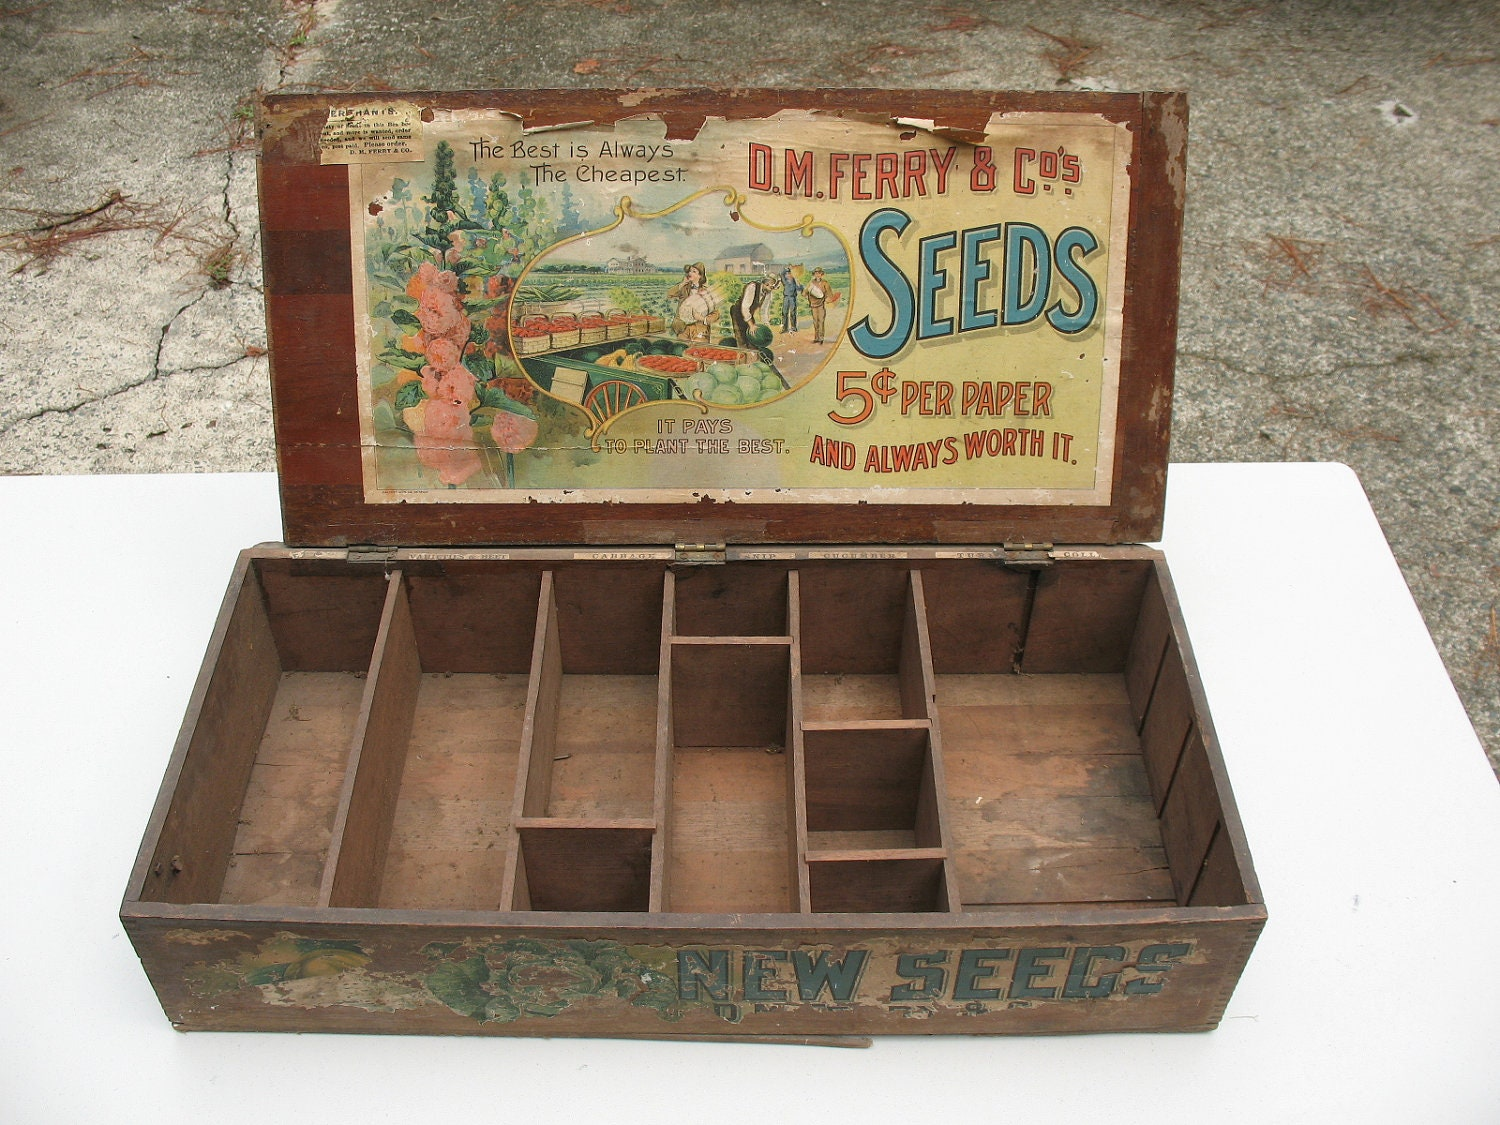 D.M. Ferry Antique Seed Box With Original Label & Partitions